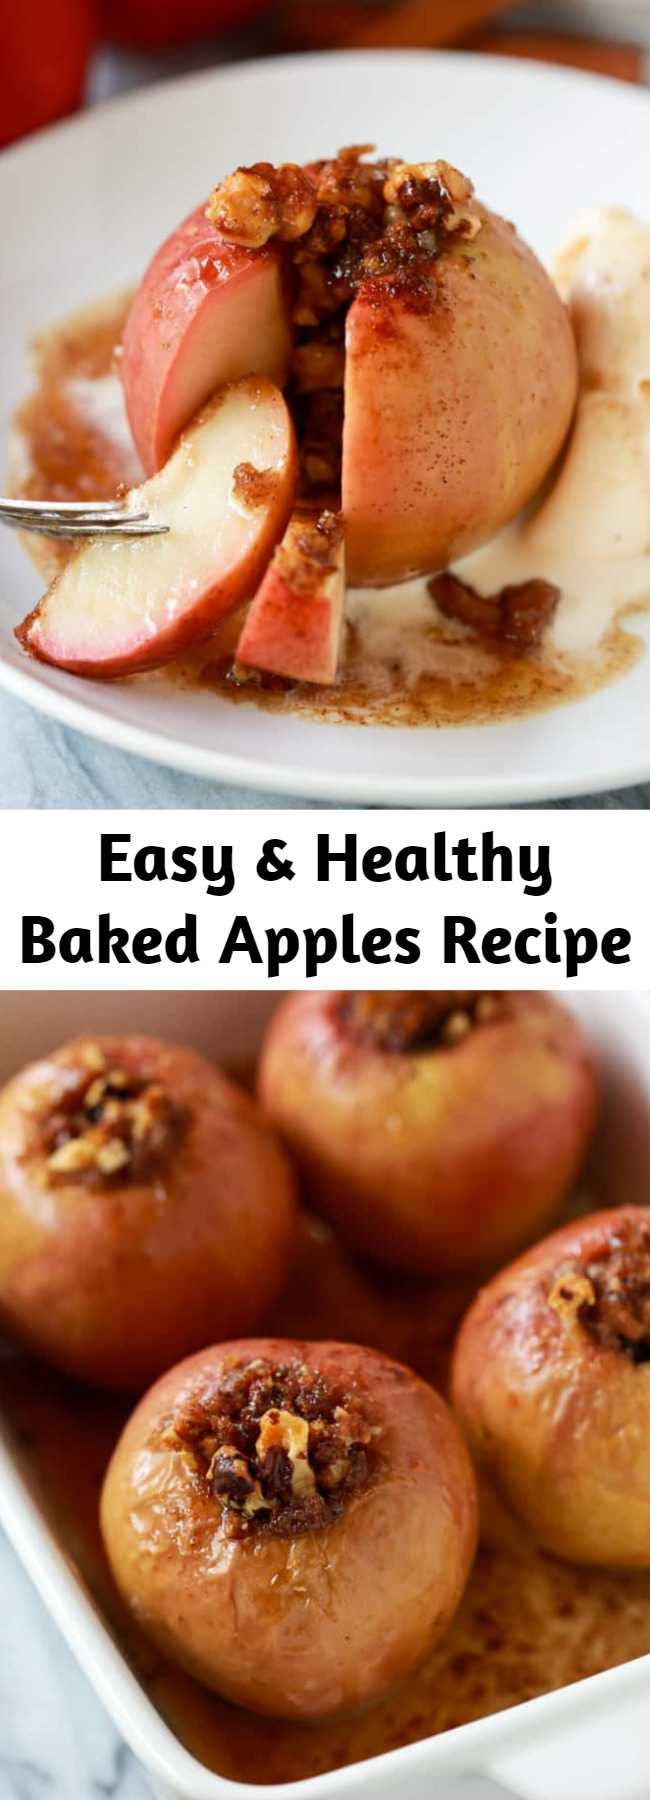 Easy & Healthy Baked Apples Recipe - These easy Baked Apples are a delicious healthy fall dessert. Crisp fresh apples stuffed with a cinnamon sugar, walnut mixture and baked until warm and tender. Serve with a scoop of vanilla ice cream.